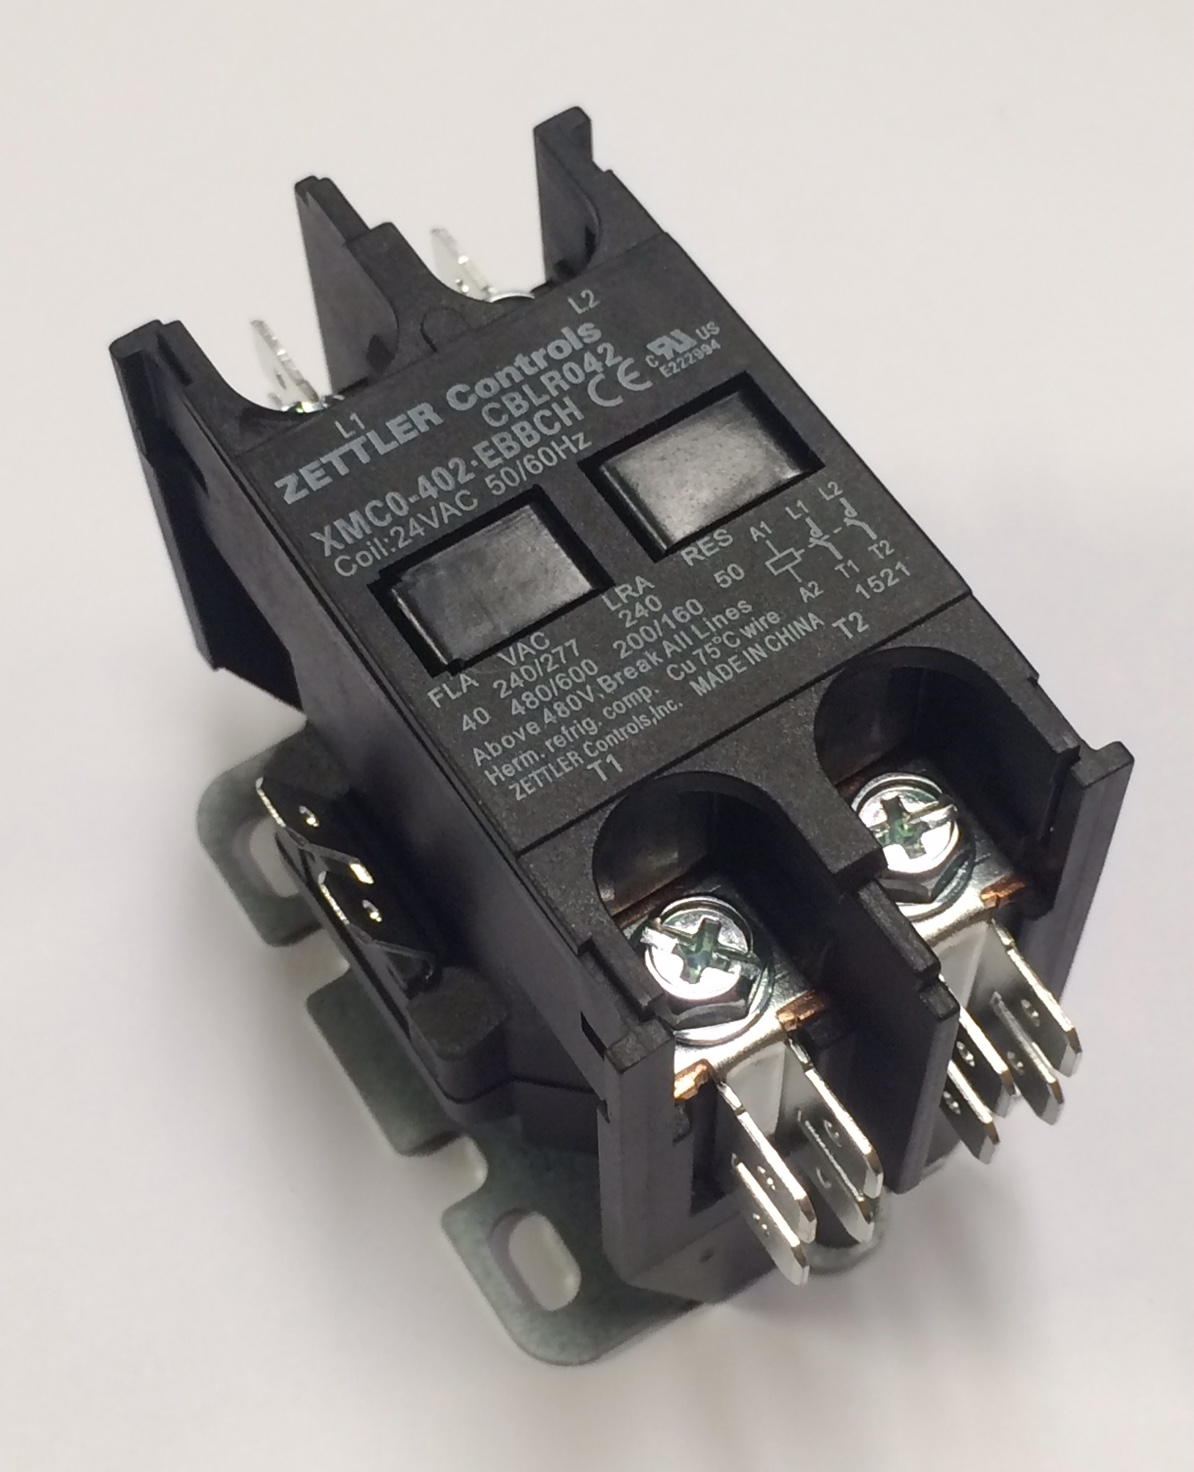 CCT050 50 Amp Back-Up Contactor